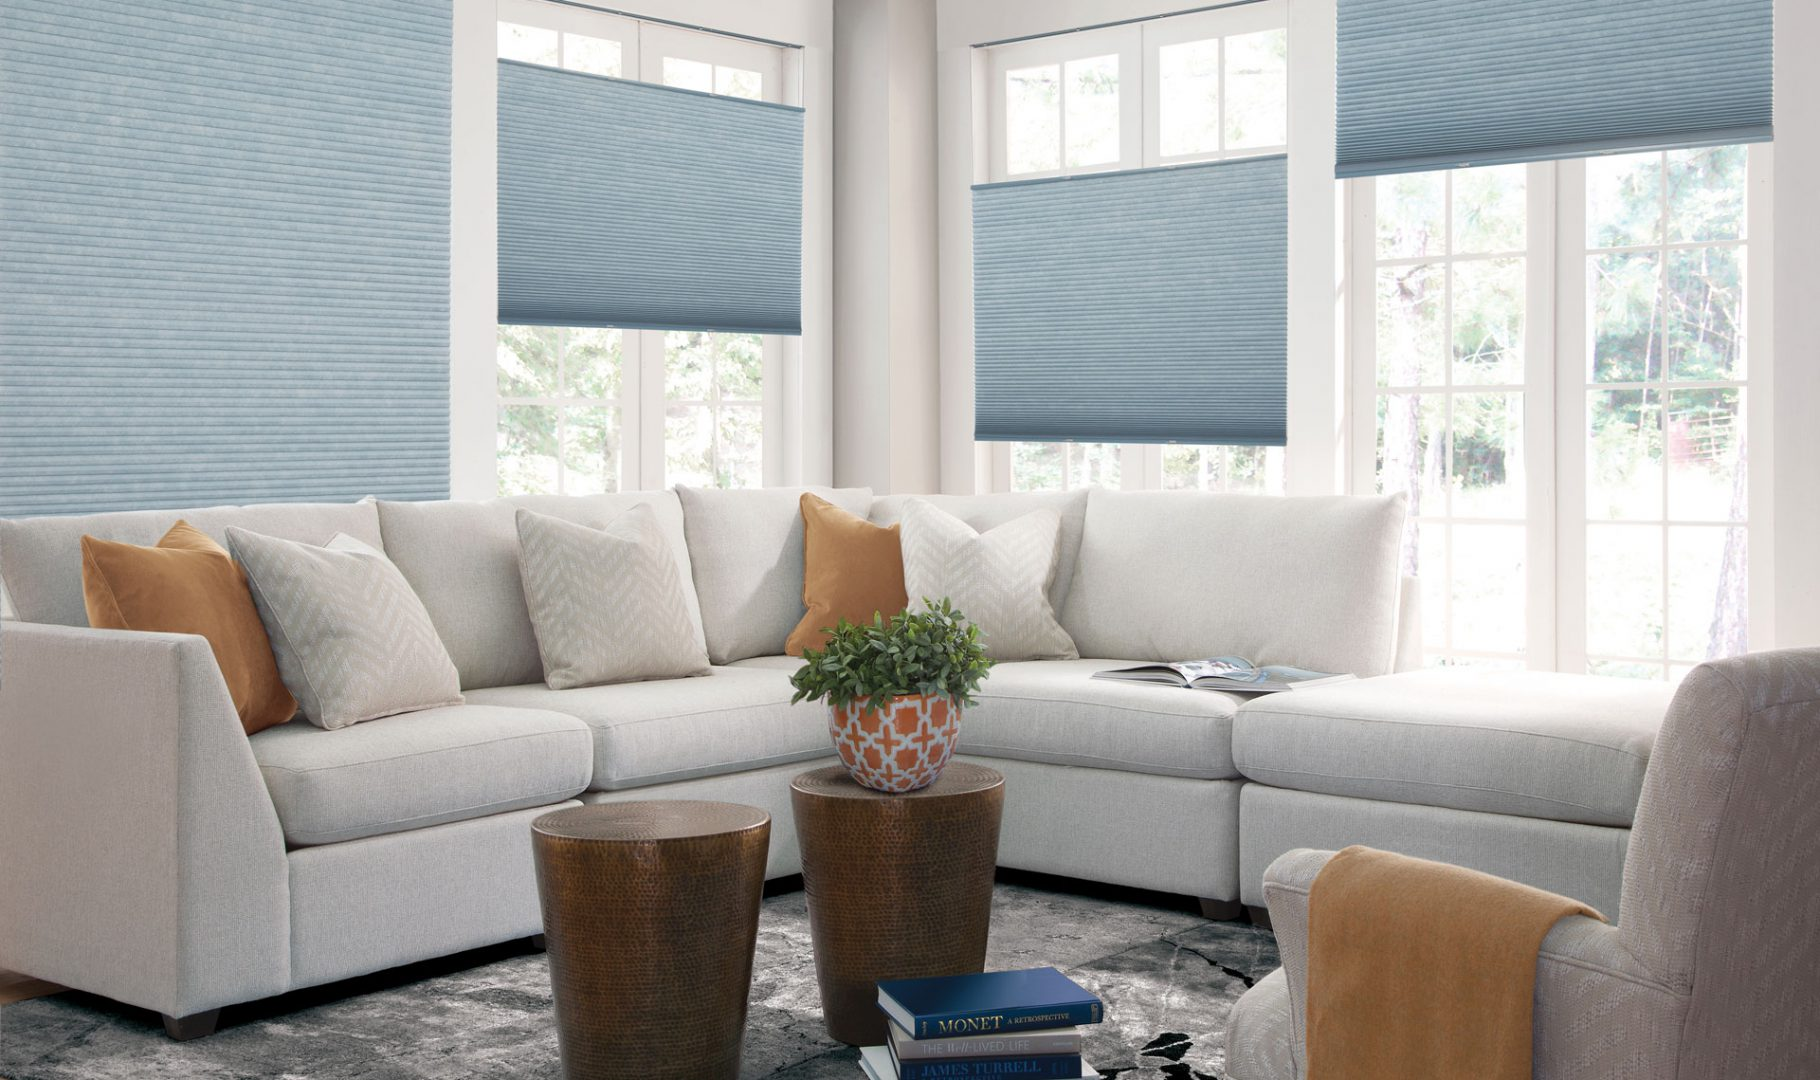 Cellular shades insulate rooms and reduce energy costs